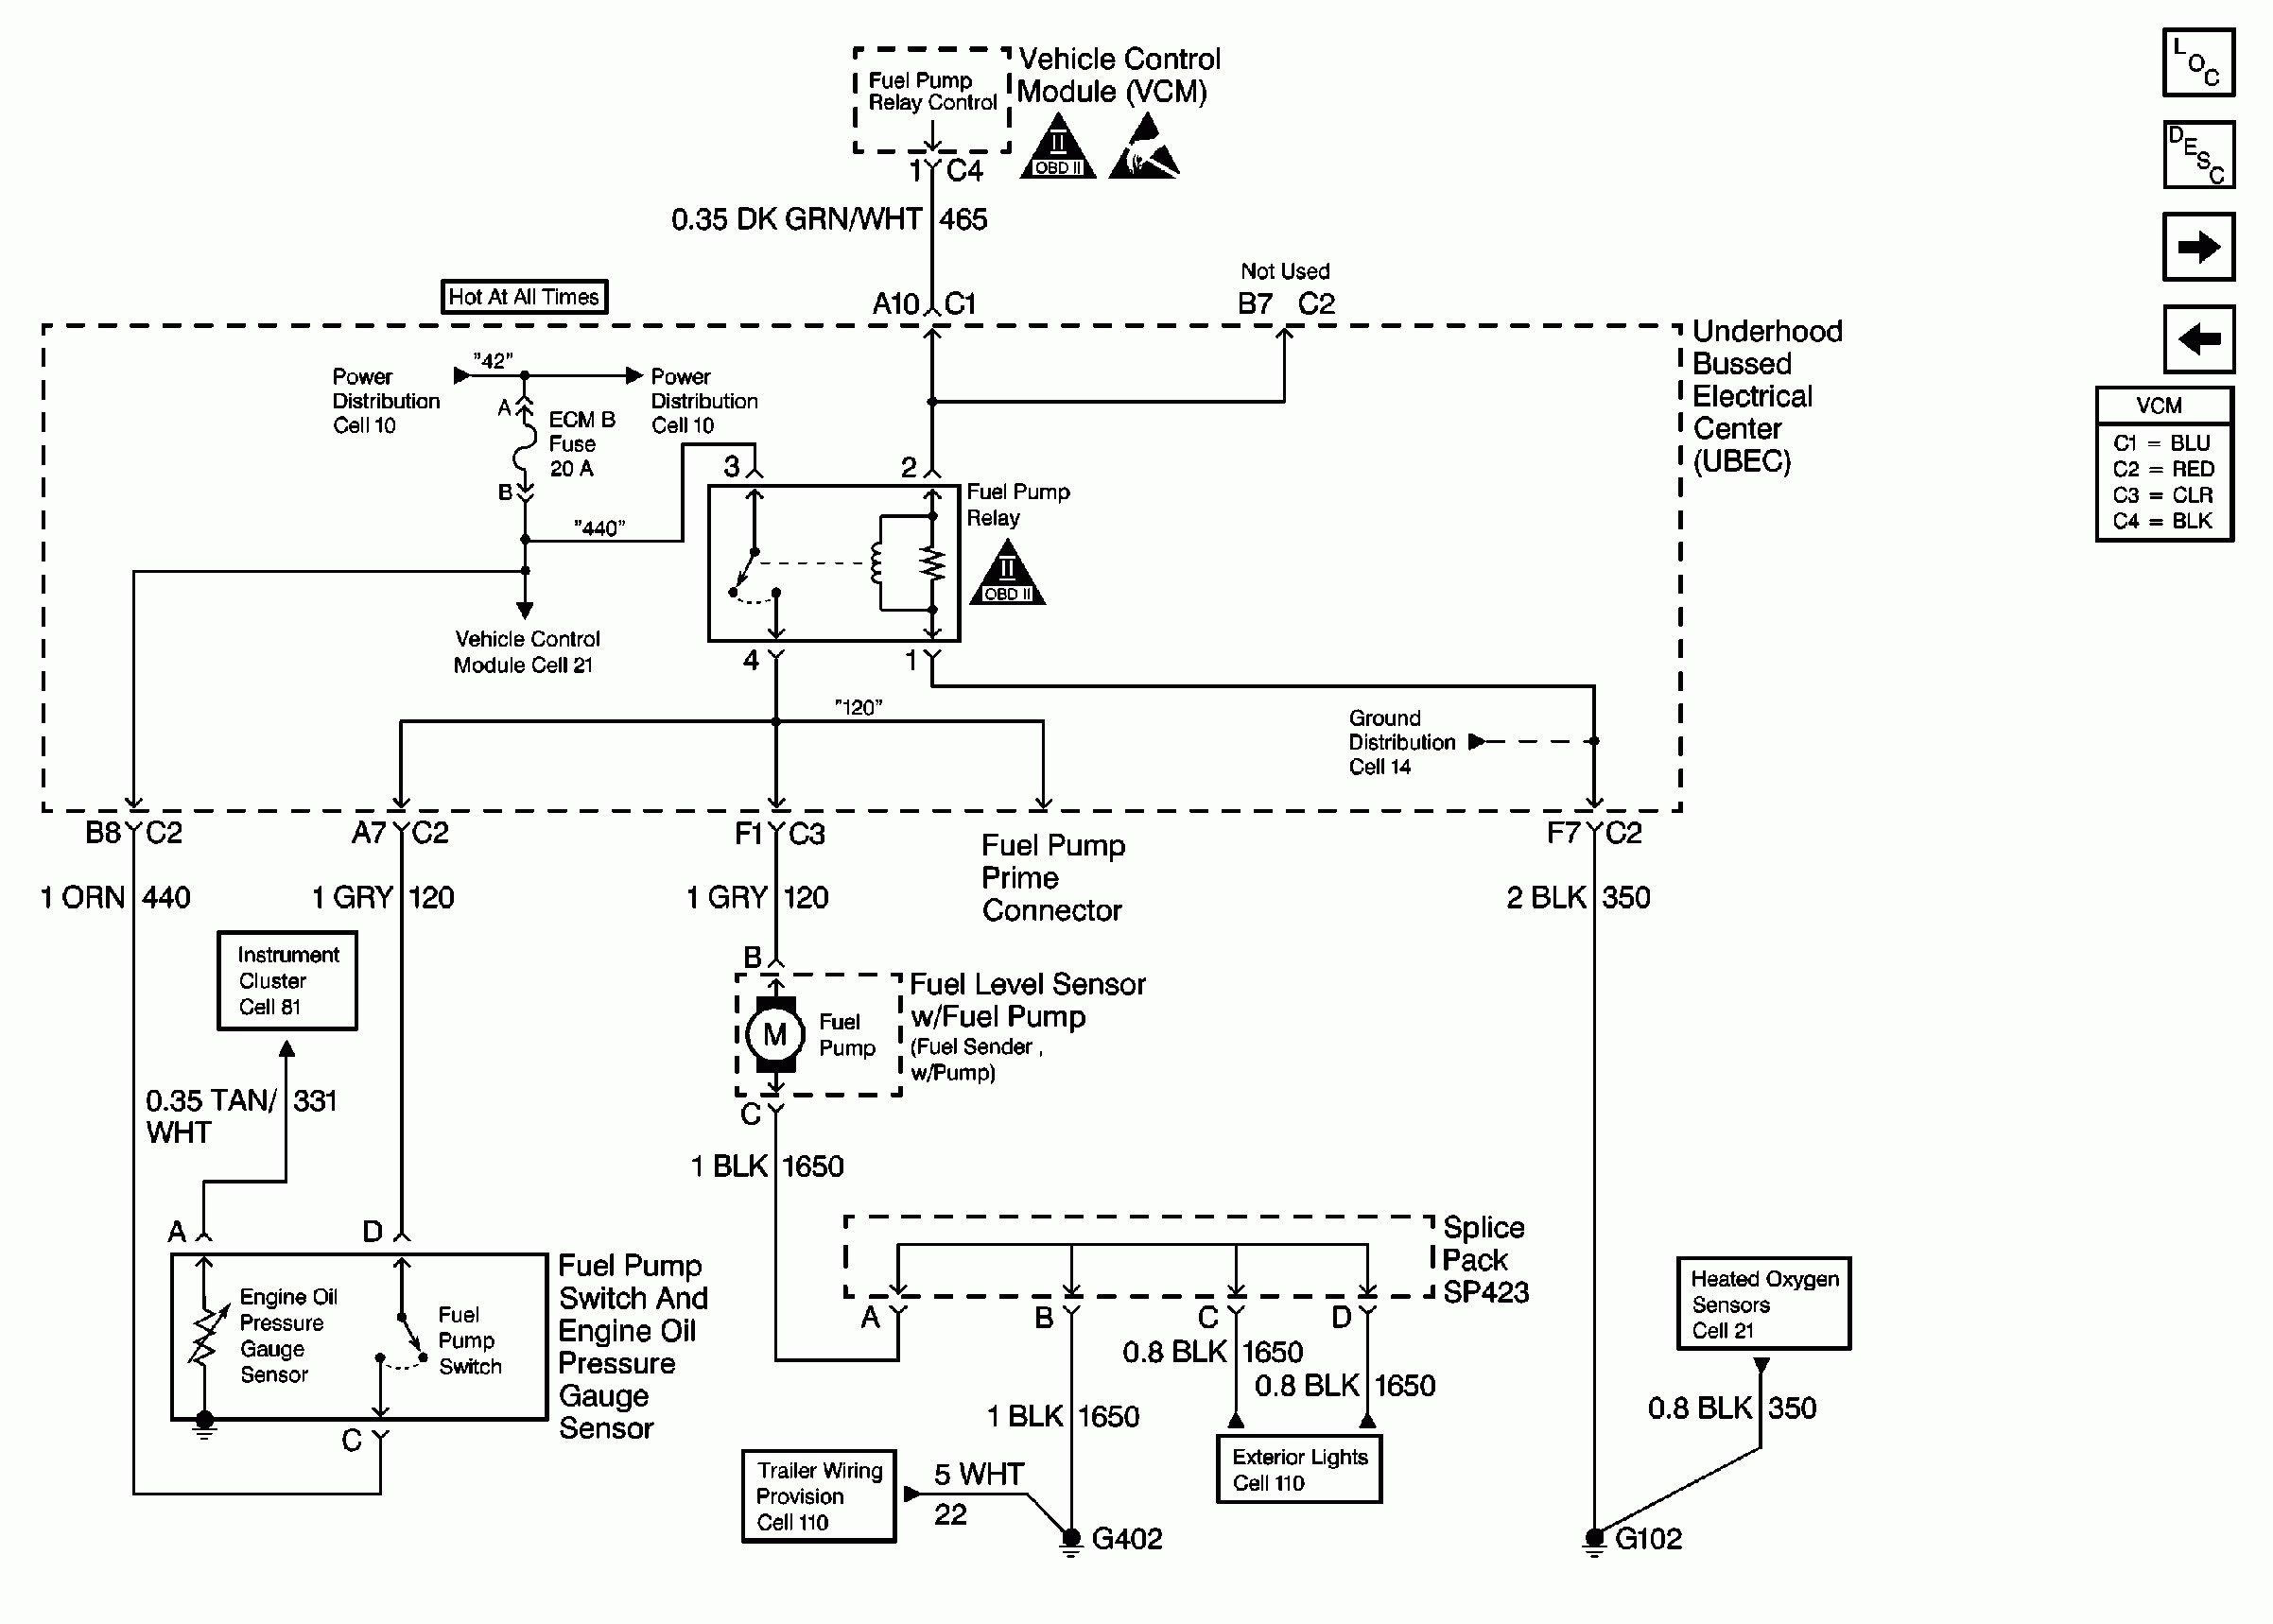 1993 s10 fuel pump wiring diagram wiring diagram paper 1993 s10 wiring diagram wiring diagram used [ 2404 x 1718 Pixel ]